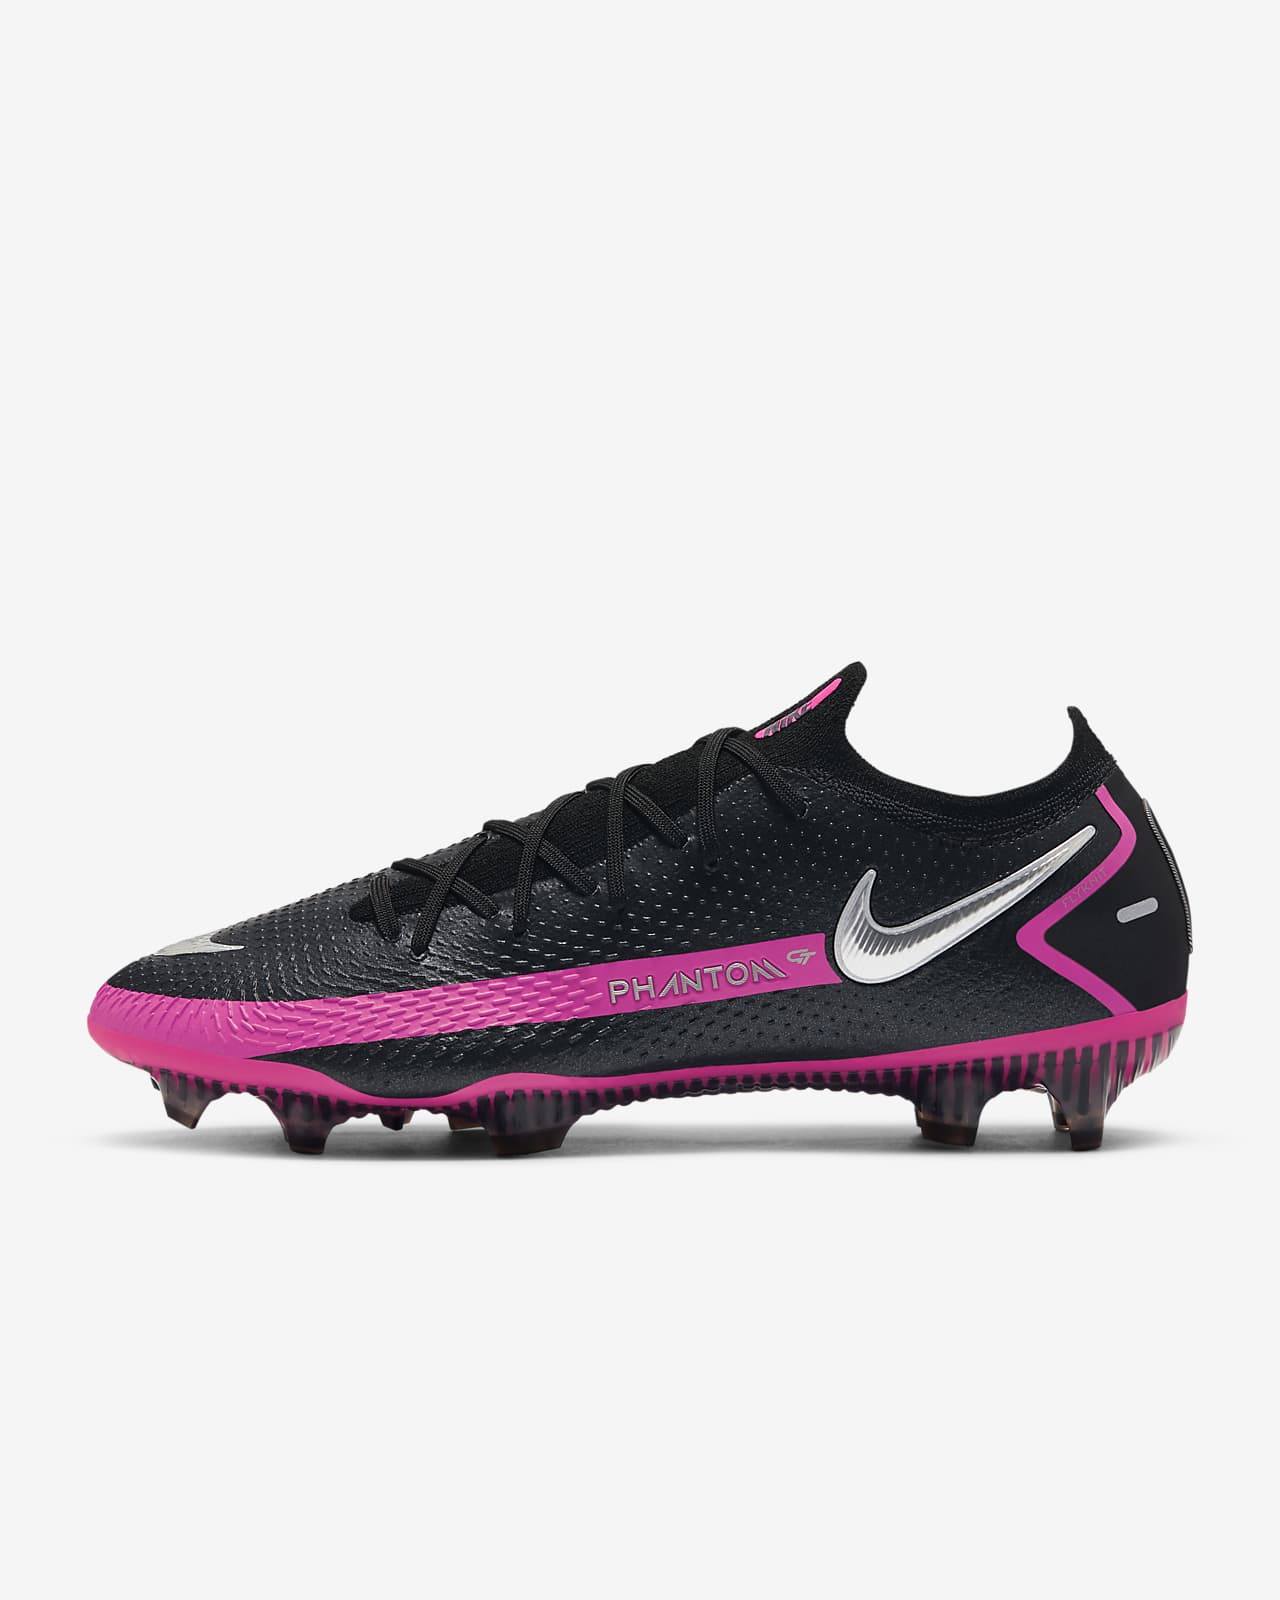 Nike Phantom GT Elite FG Firm-Ground Soccer Cleat